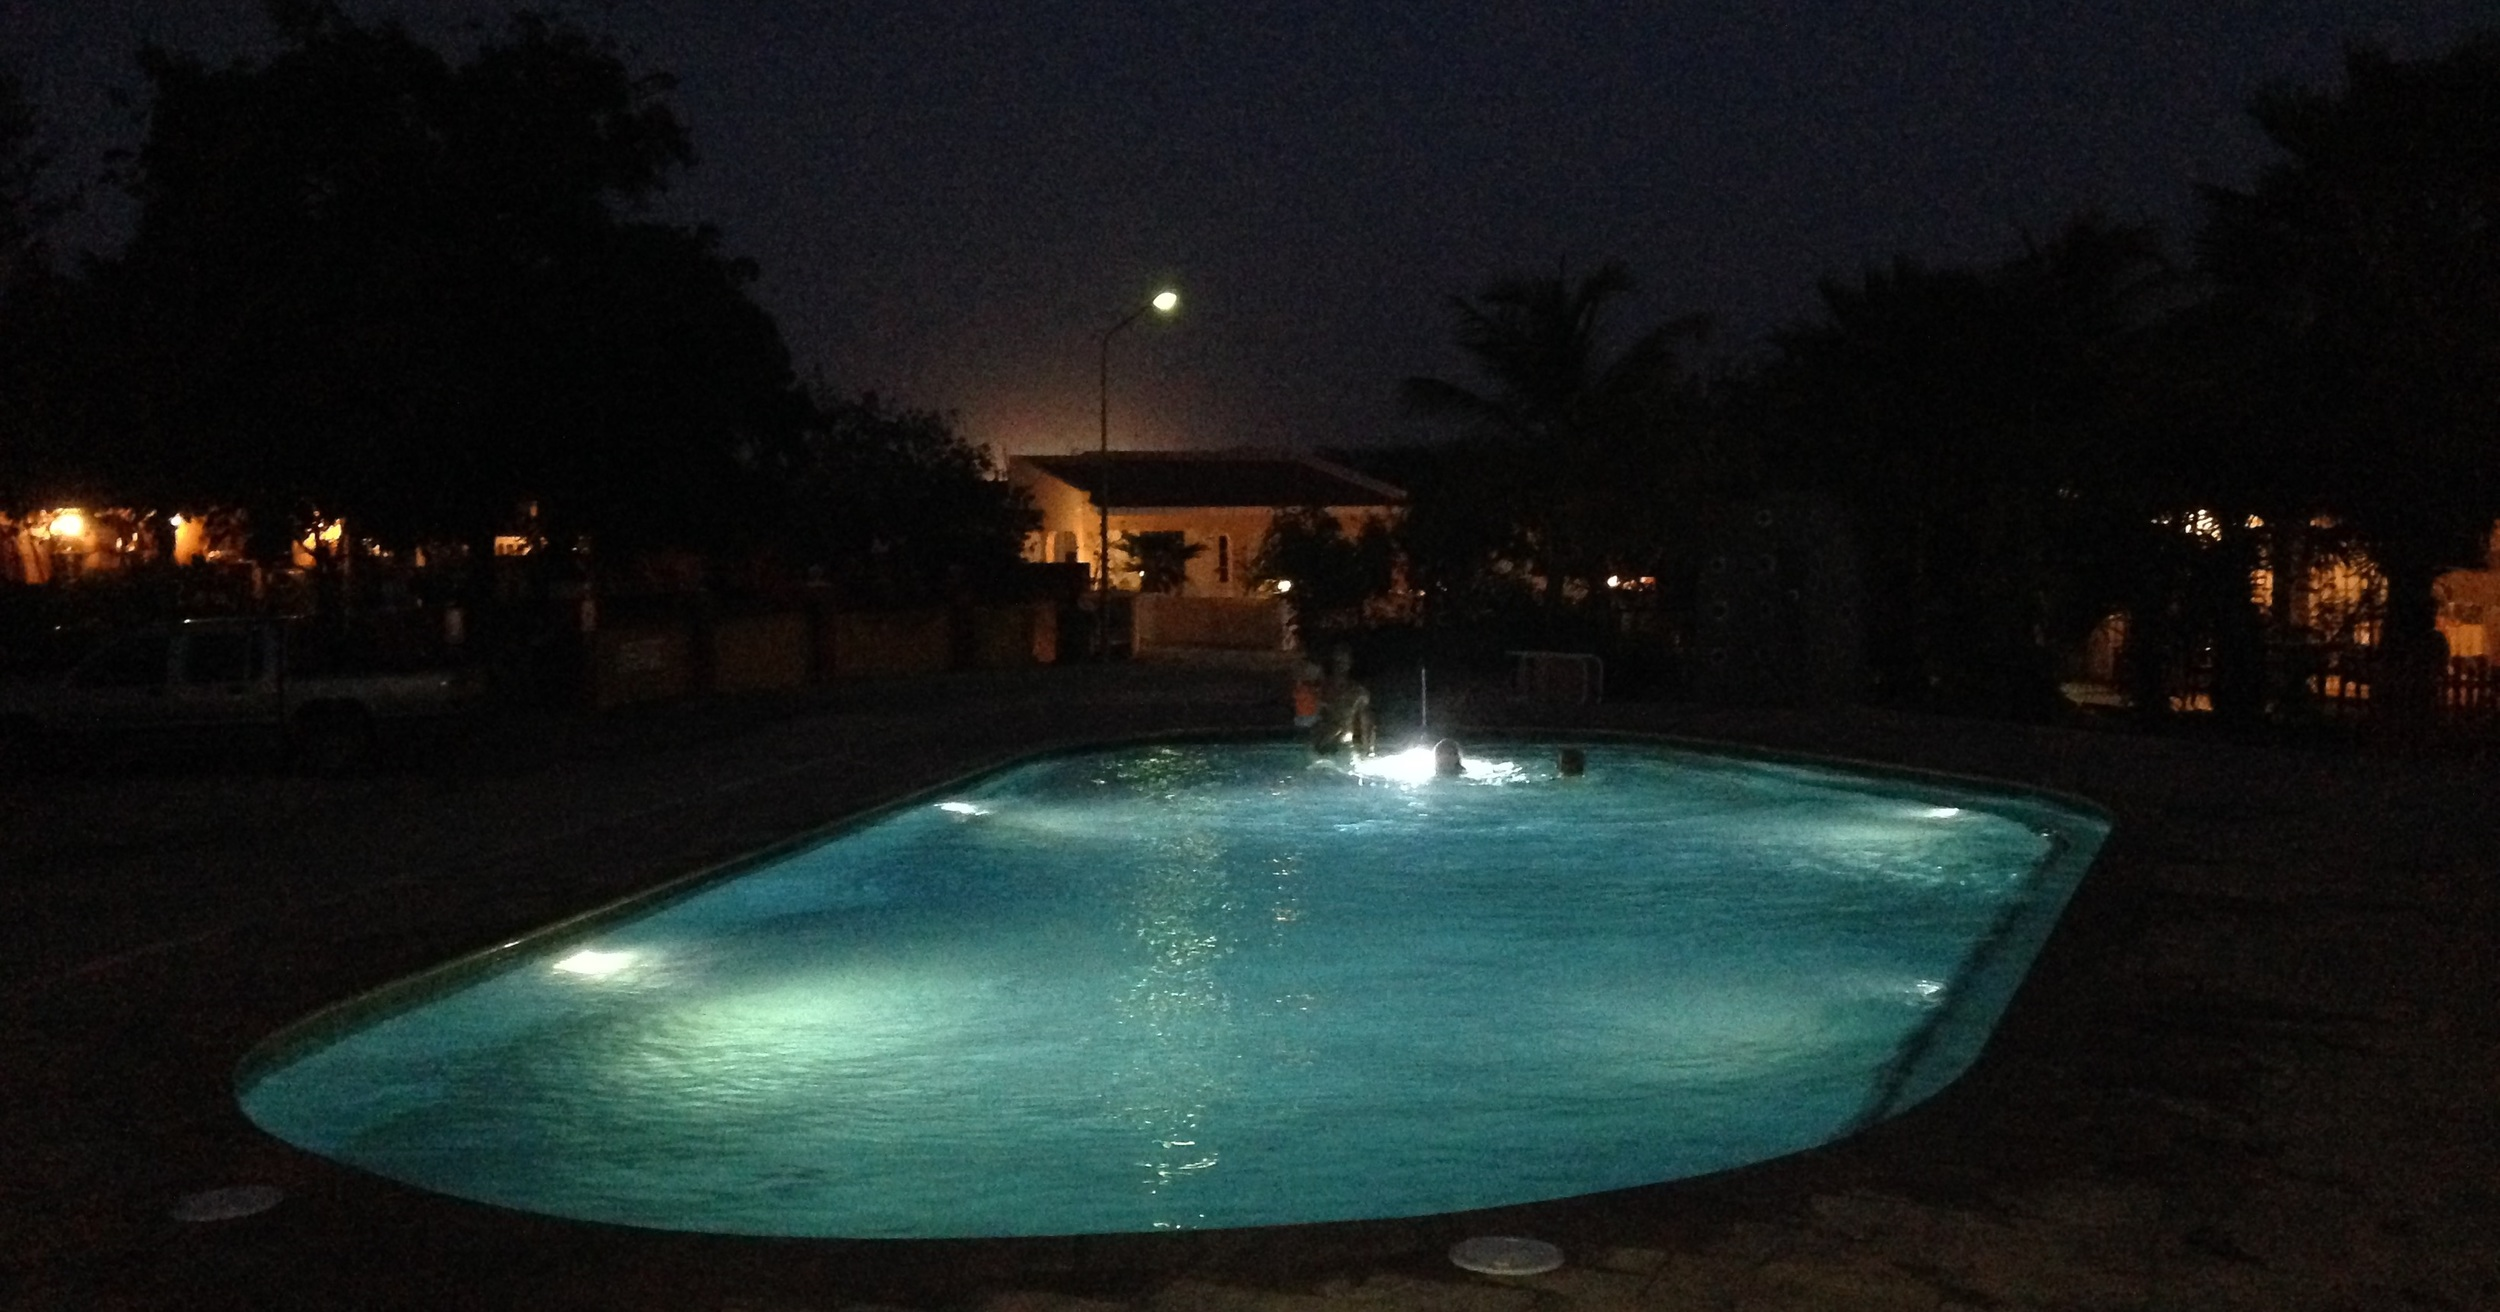 A big pool with 5 lamps installed. For a standard private pool, a single lamp will suffice.